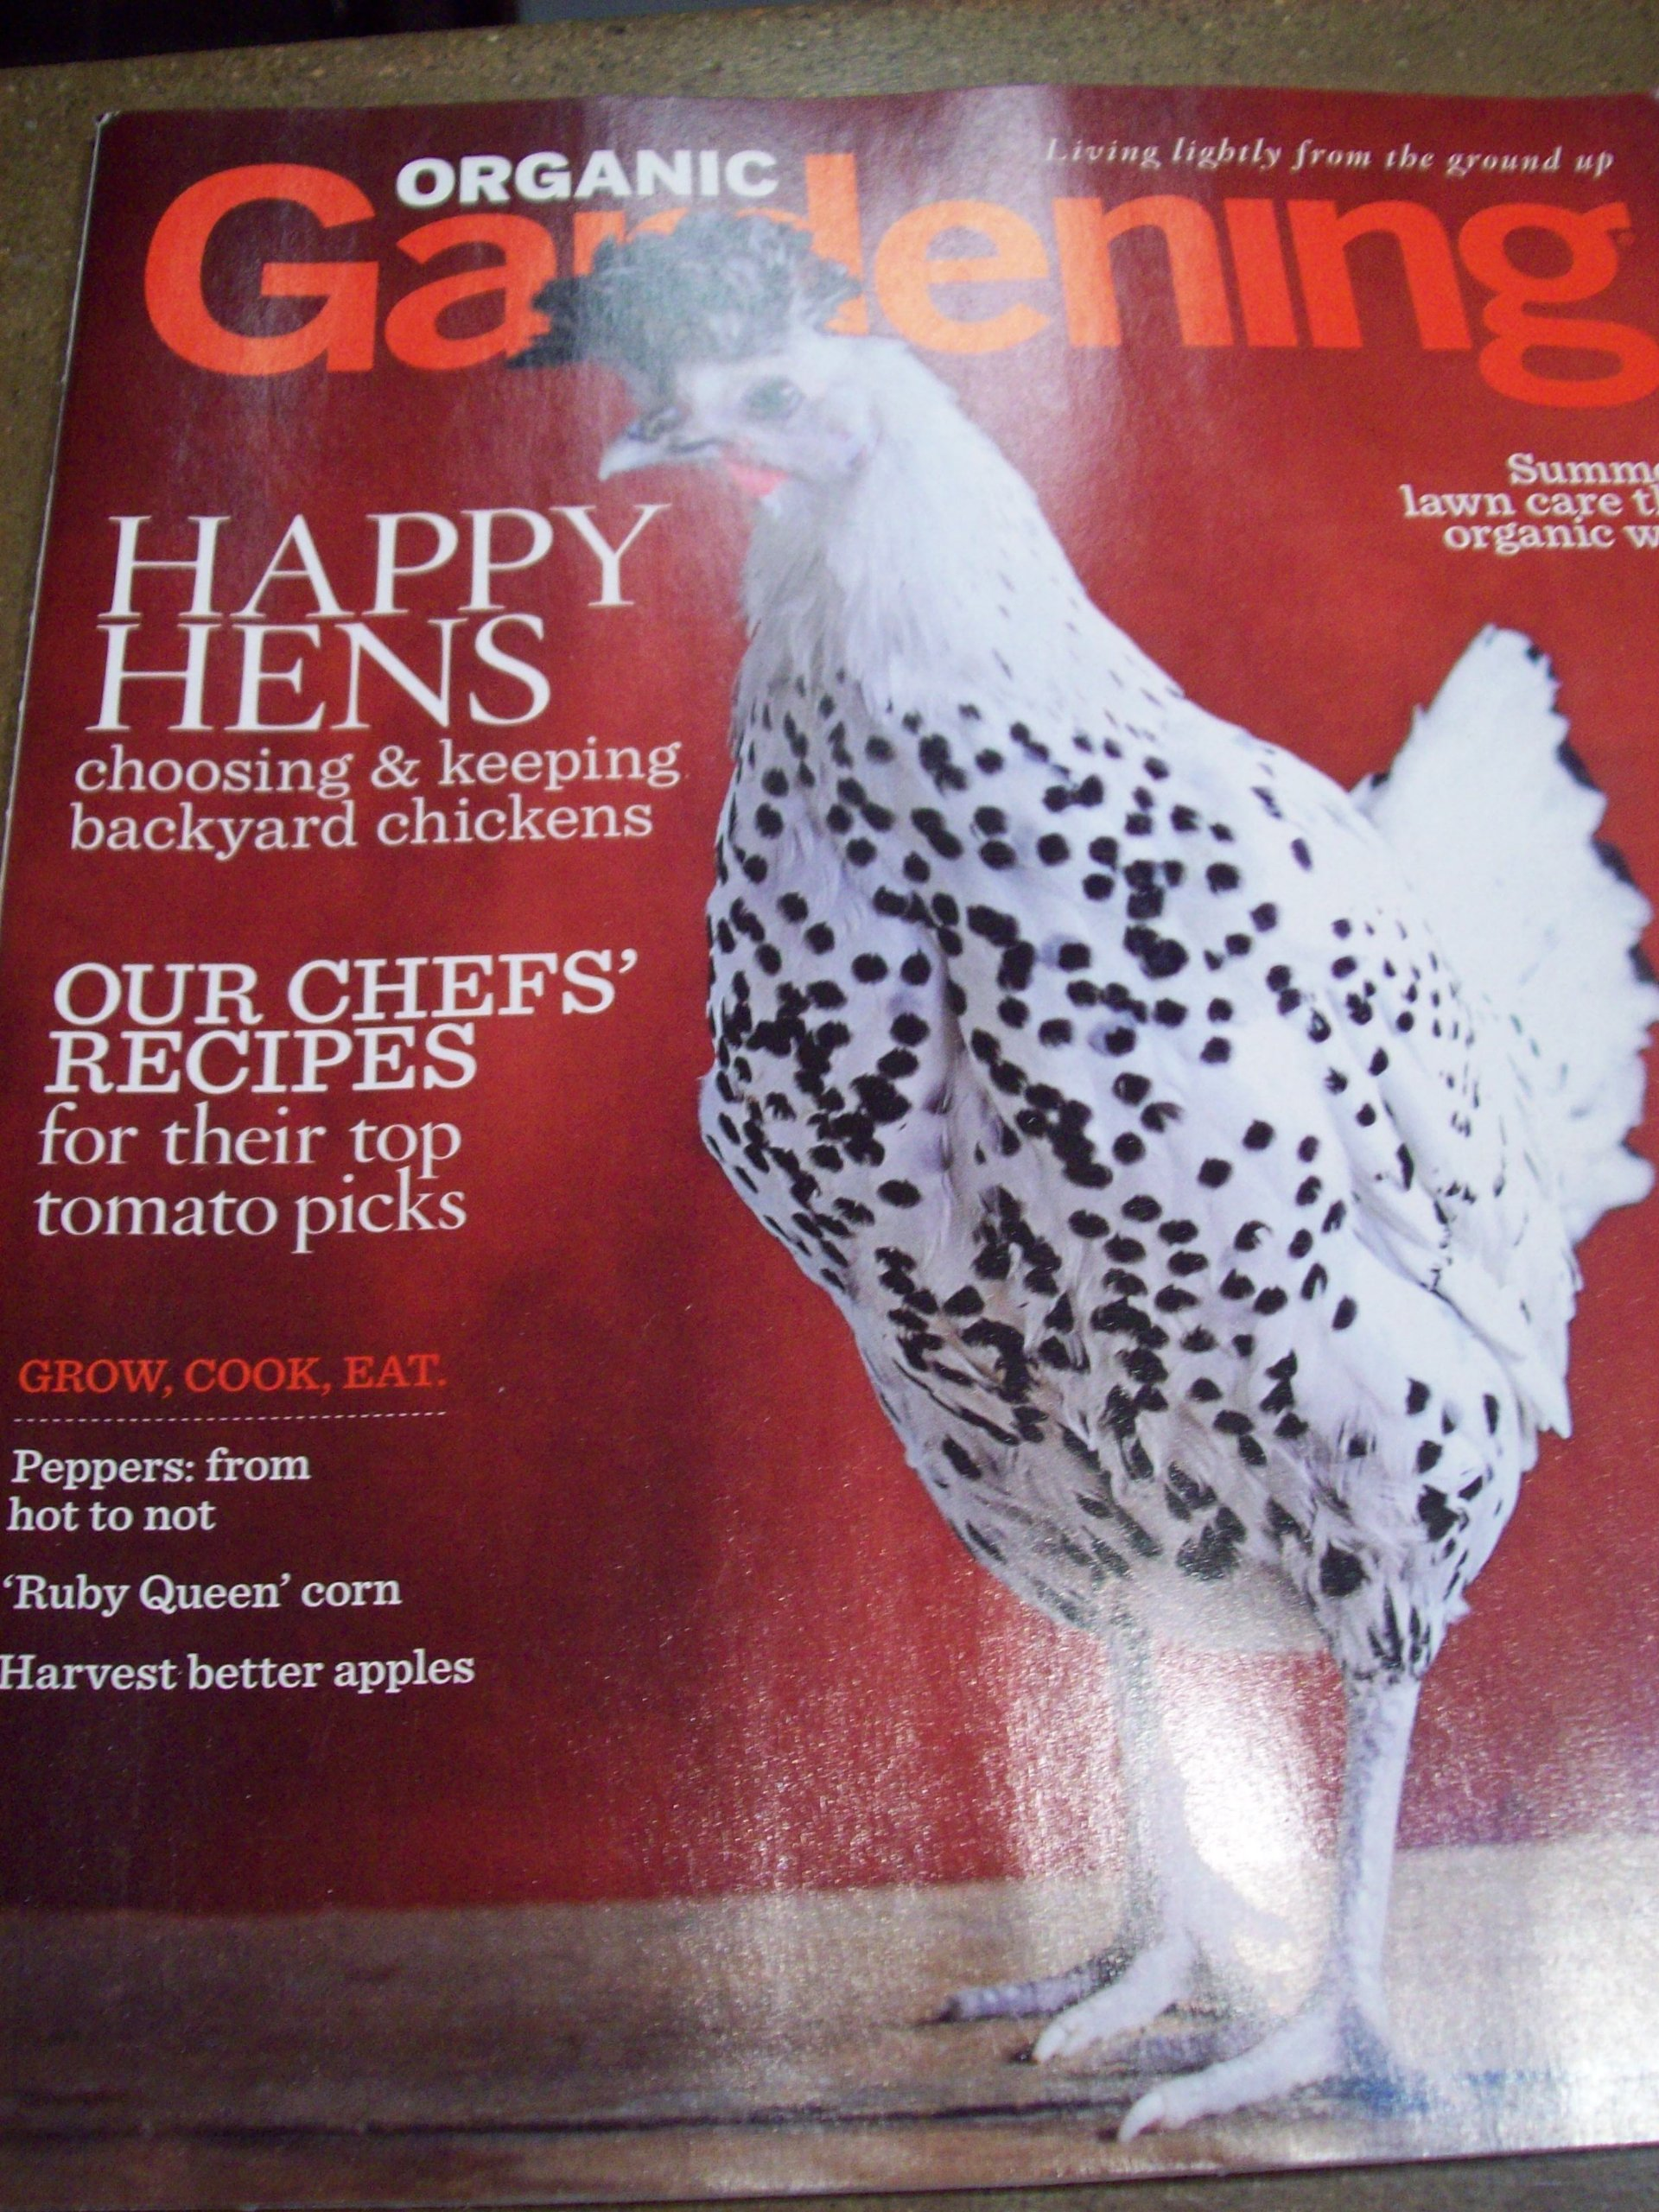 organic-gardening-june-july-2010-happy-hens-summer-lawn-care-harvest-better-apples-our-chefs-recipes